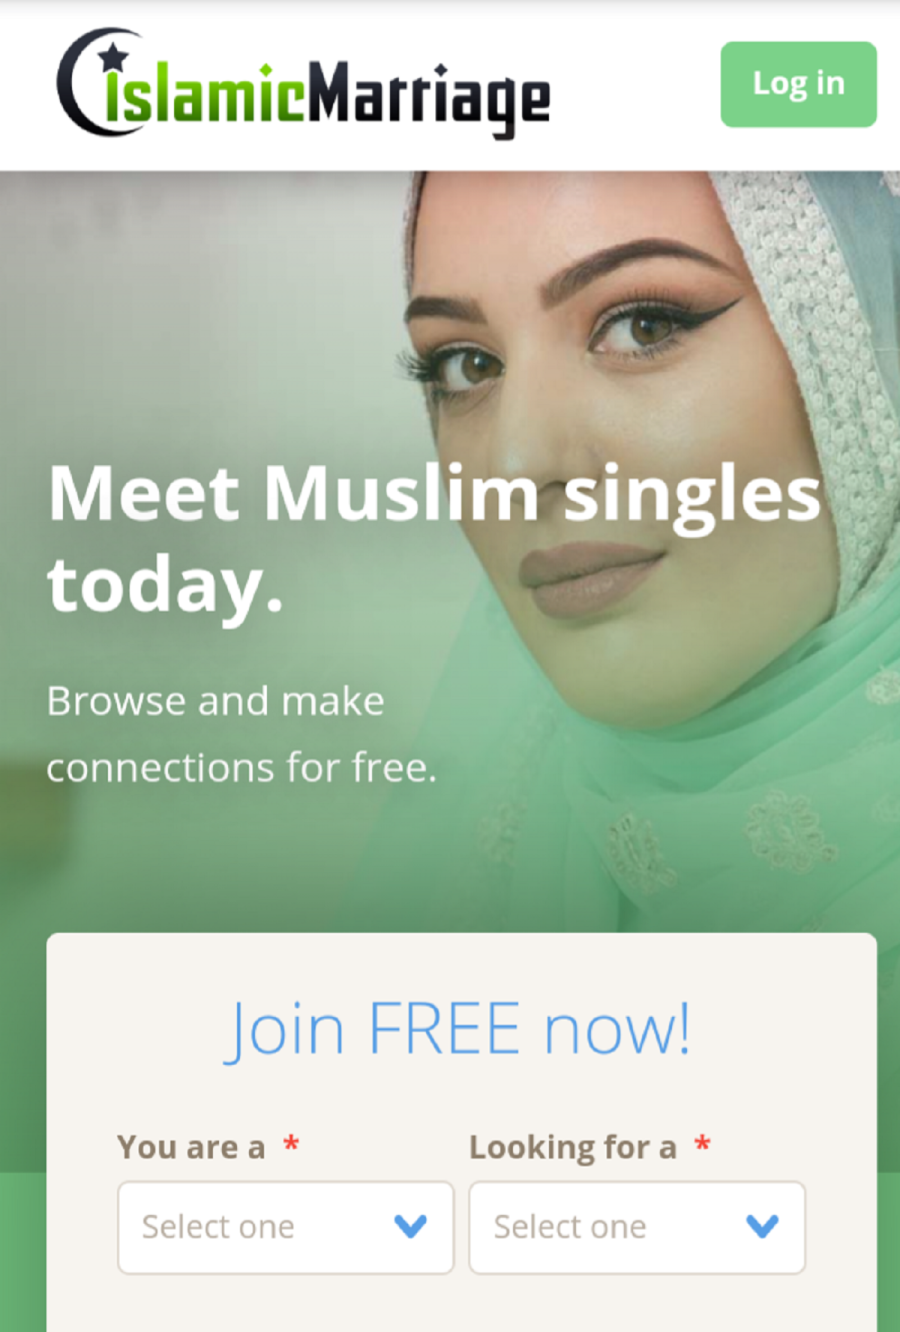 islamicmarriage app